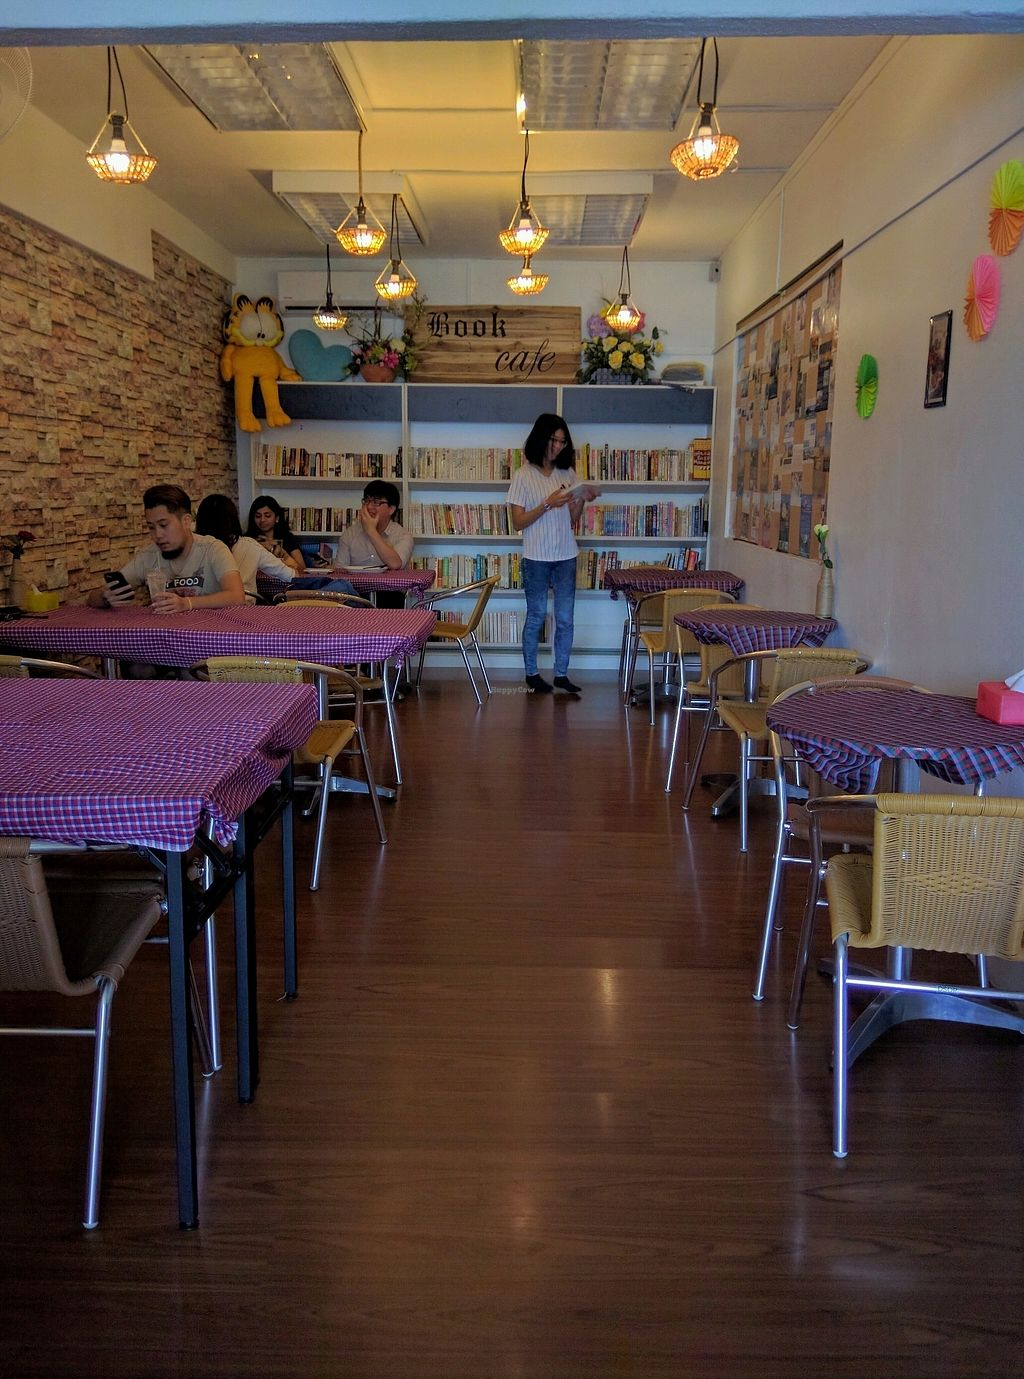 """Photo of Book Cafe  by <a href=""""/members/profile/Summer_Tan"""">Summer_Tan</a> <br/>Inside the warm and cosy cafe <br/> January 27, 2018  - <a href='/contact/abuse/image/64126/351518'>Report</a>"""